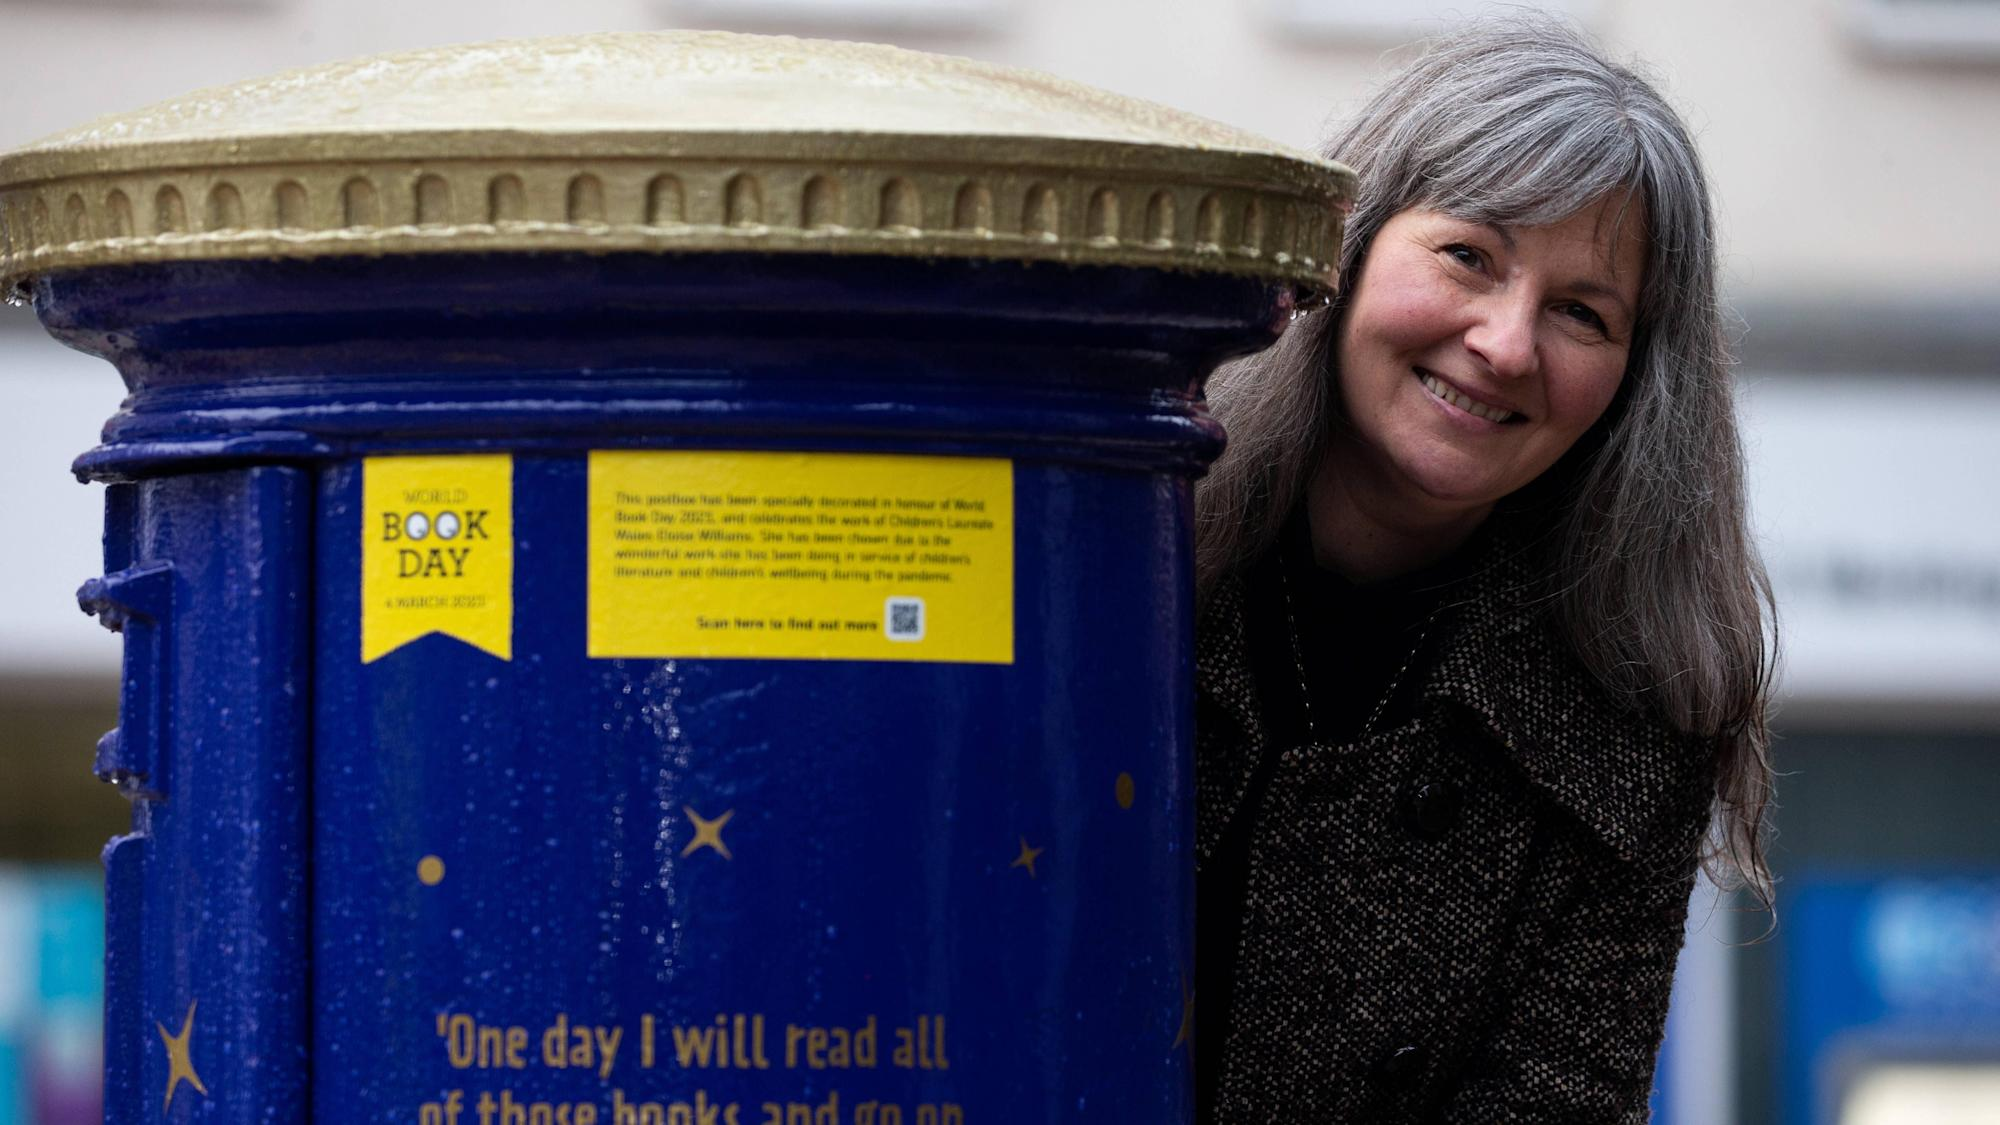 Special post boxes mark World Book Day